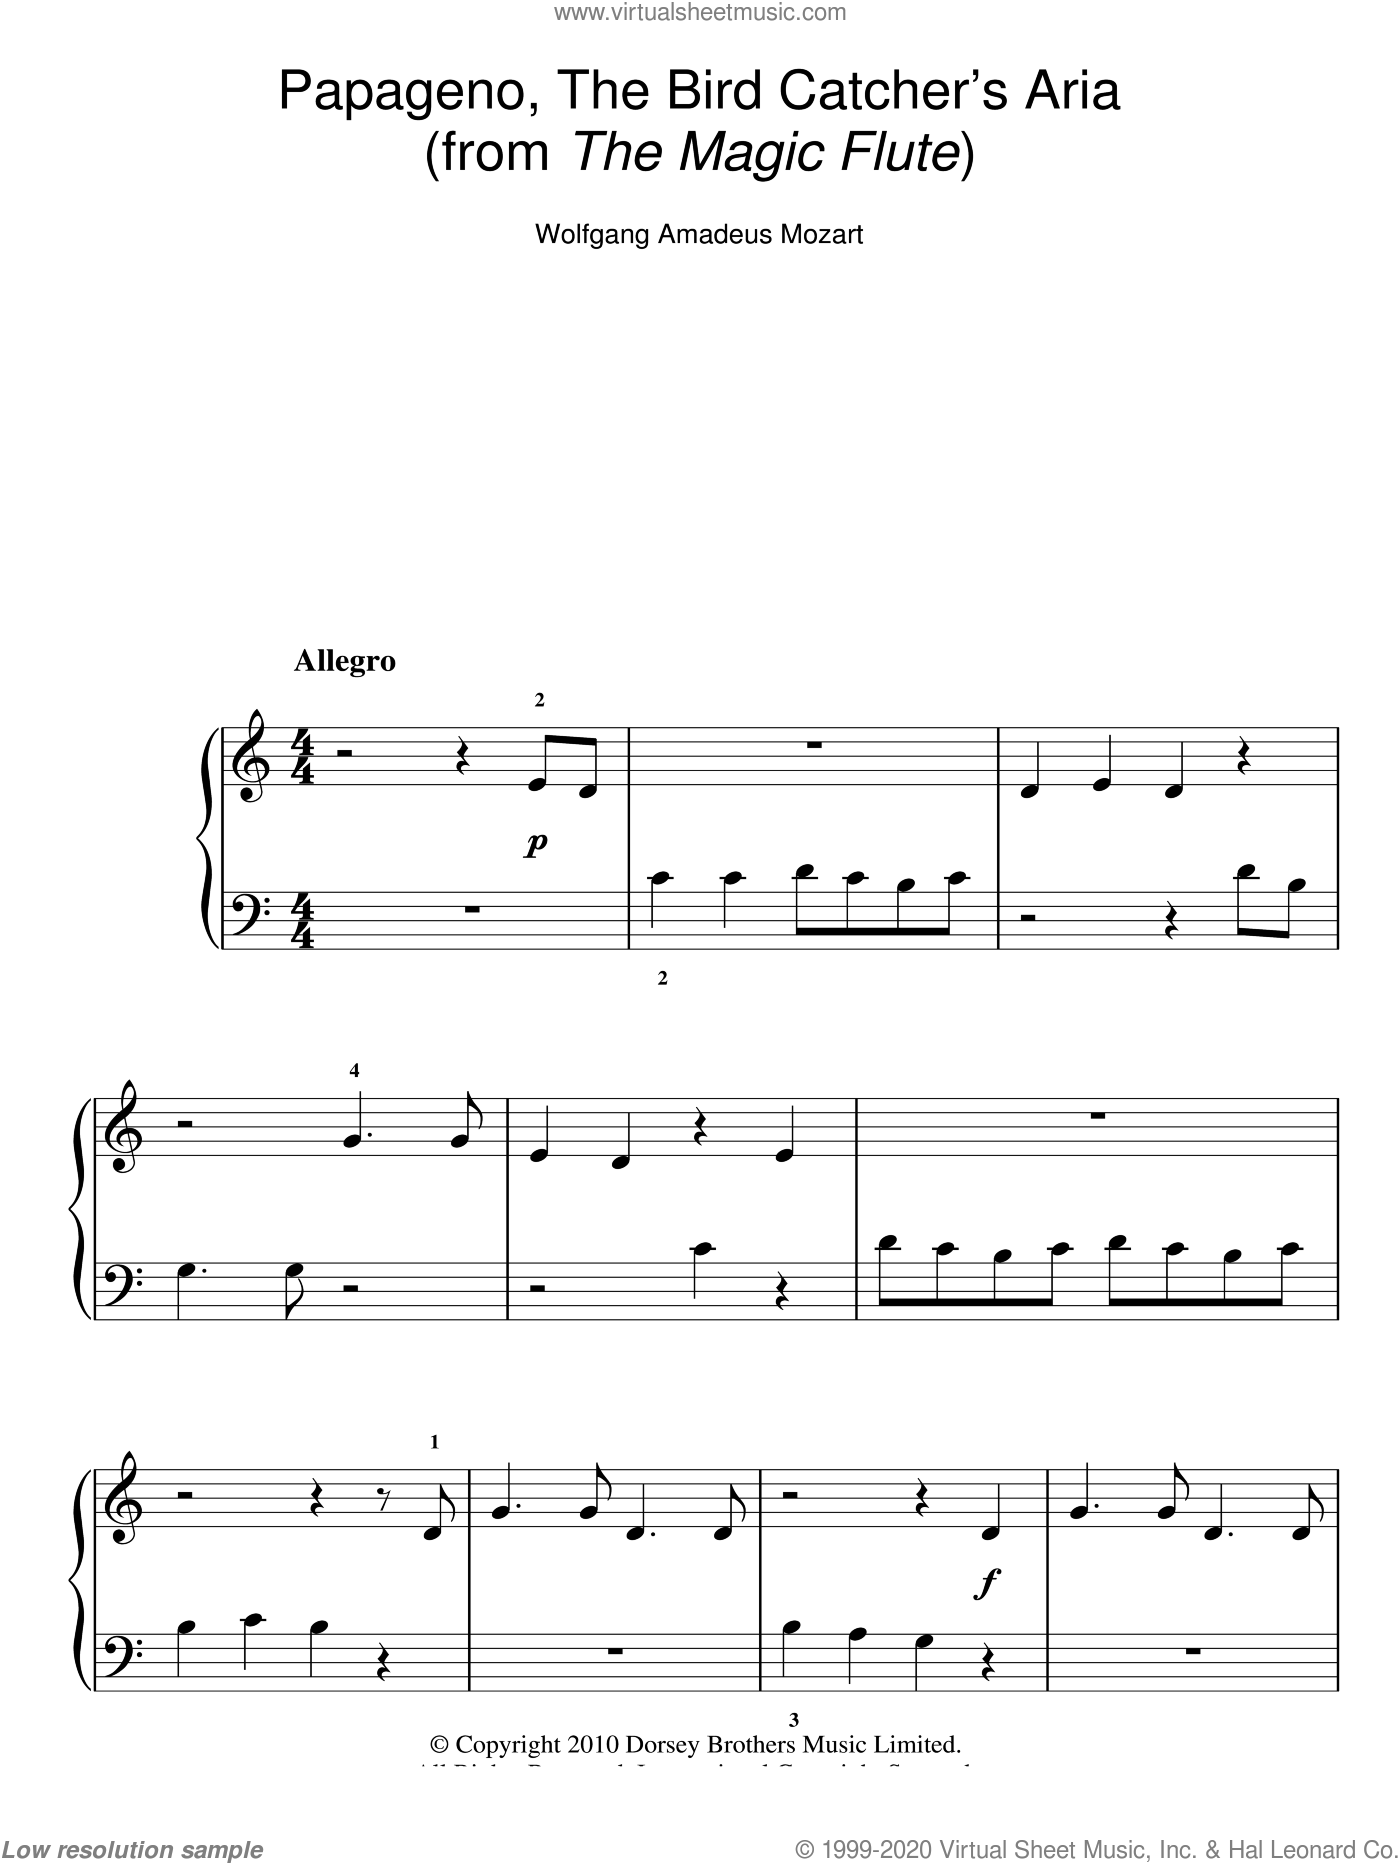 Papageno, The Bird Catcher's Aria (from The Magic Flute) sheet music for piano solo by Wolfgang Amadeus Mozart. Score Image Preview.